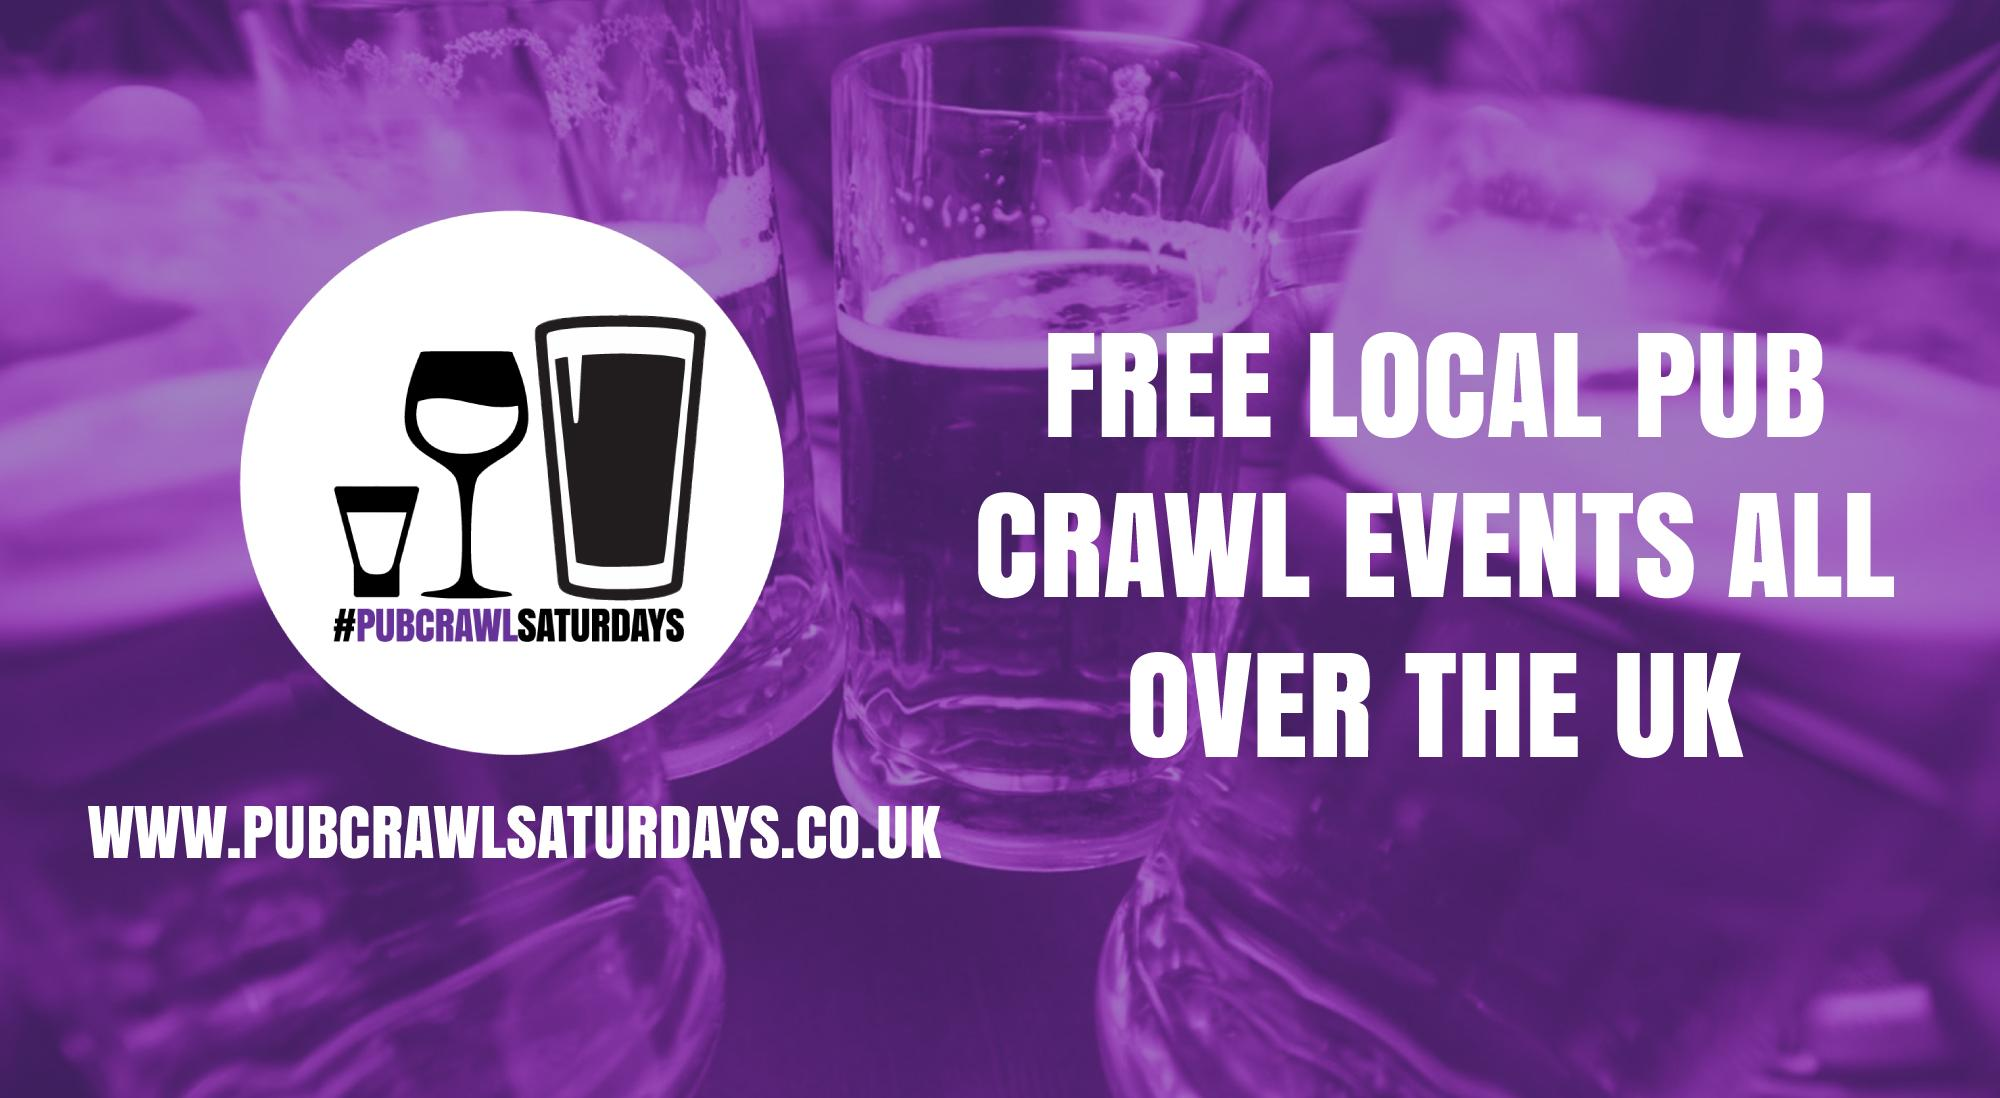 PUB CRAWL SATURDAYS! Free weekly pub crawl event in Bristol